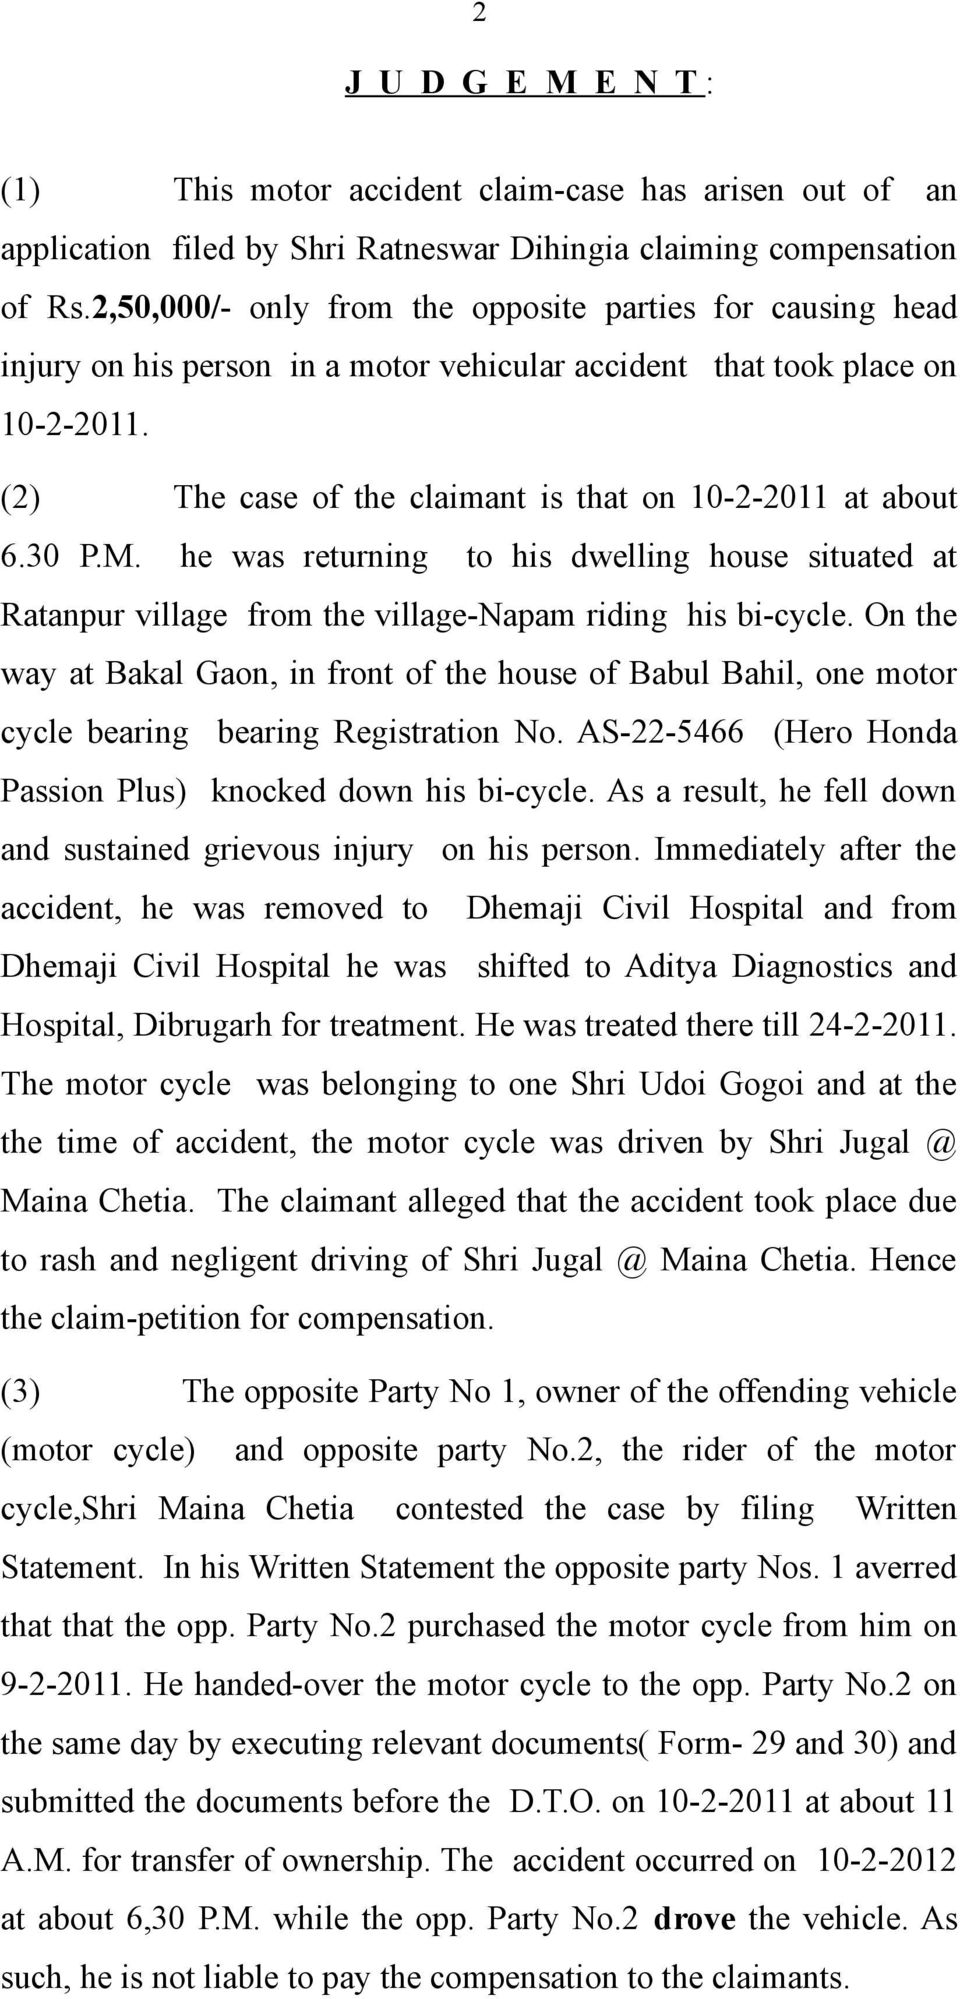 (2) The case of the claimant is that on 10-2-2011 at about 6.30 P.M. he was returning to his dwelling house situated at Ratanpur village from the village-napam riding his bi-cycle.